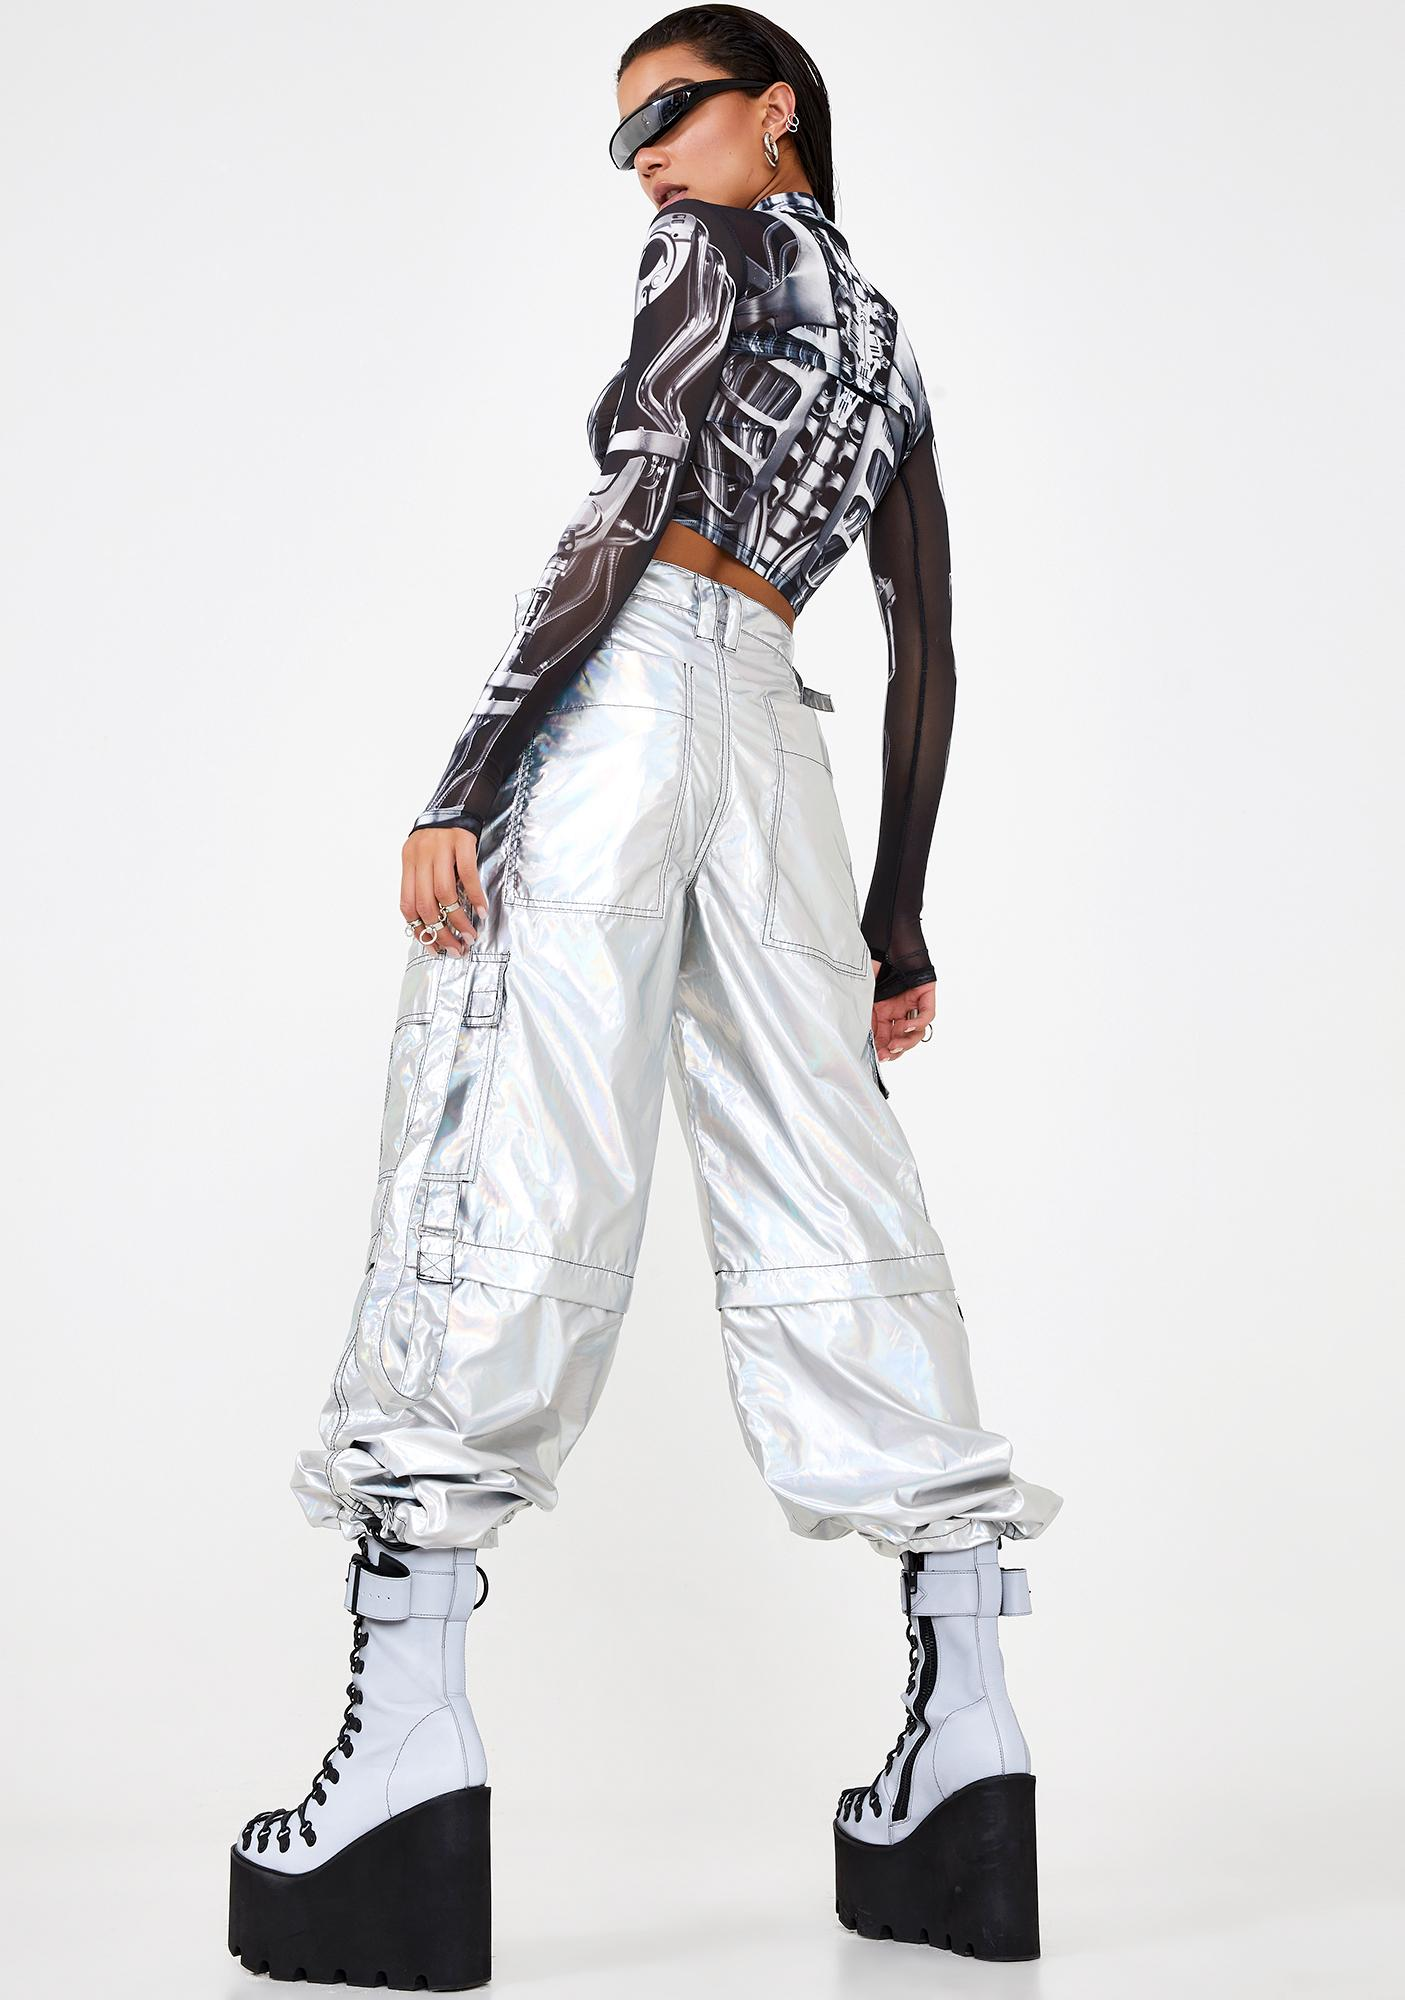 Club Exx Rave Action Holographic Cargo Pants